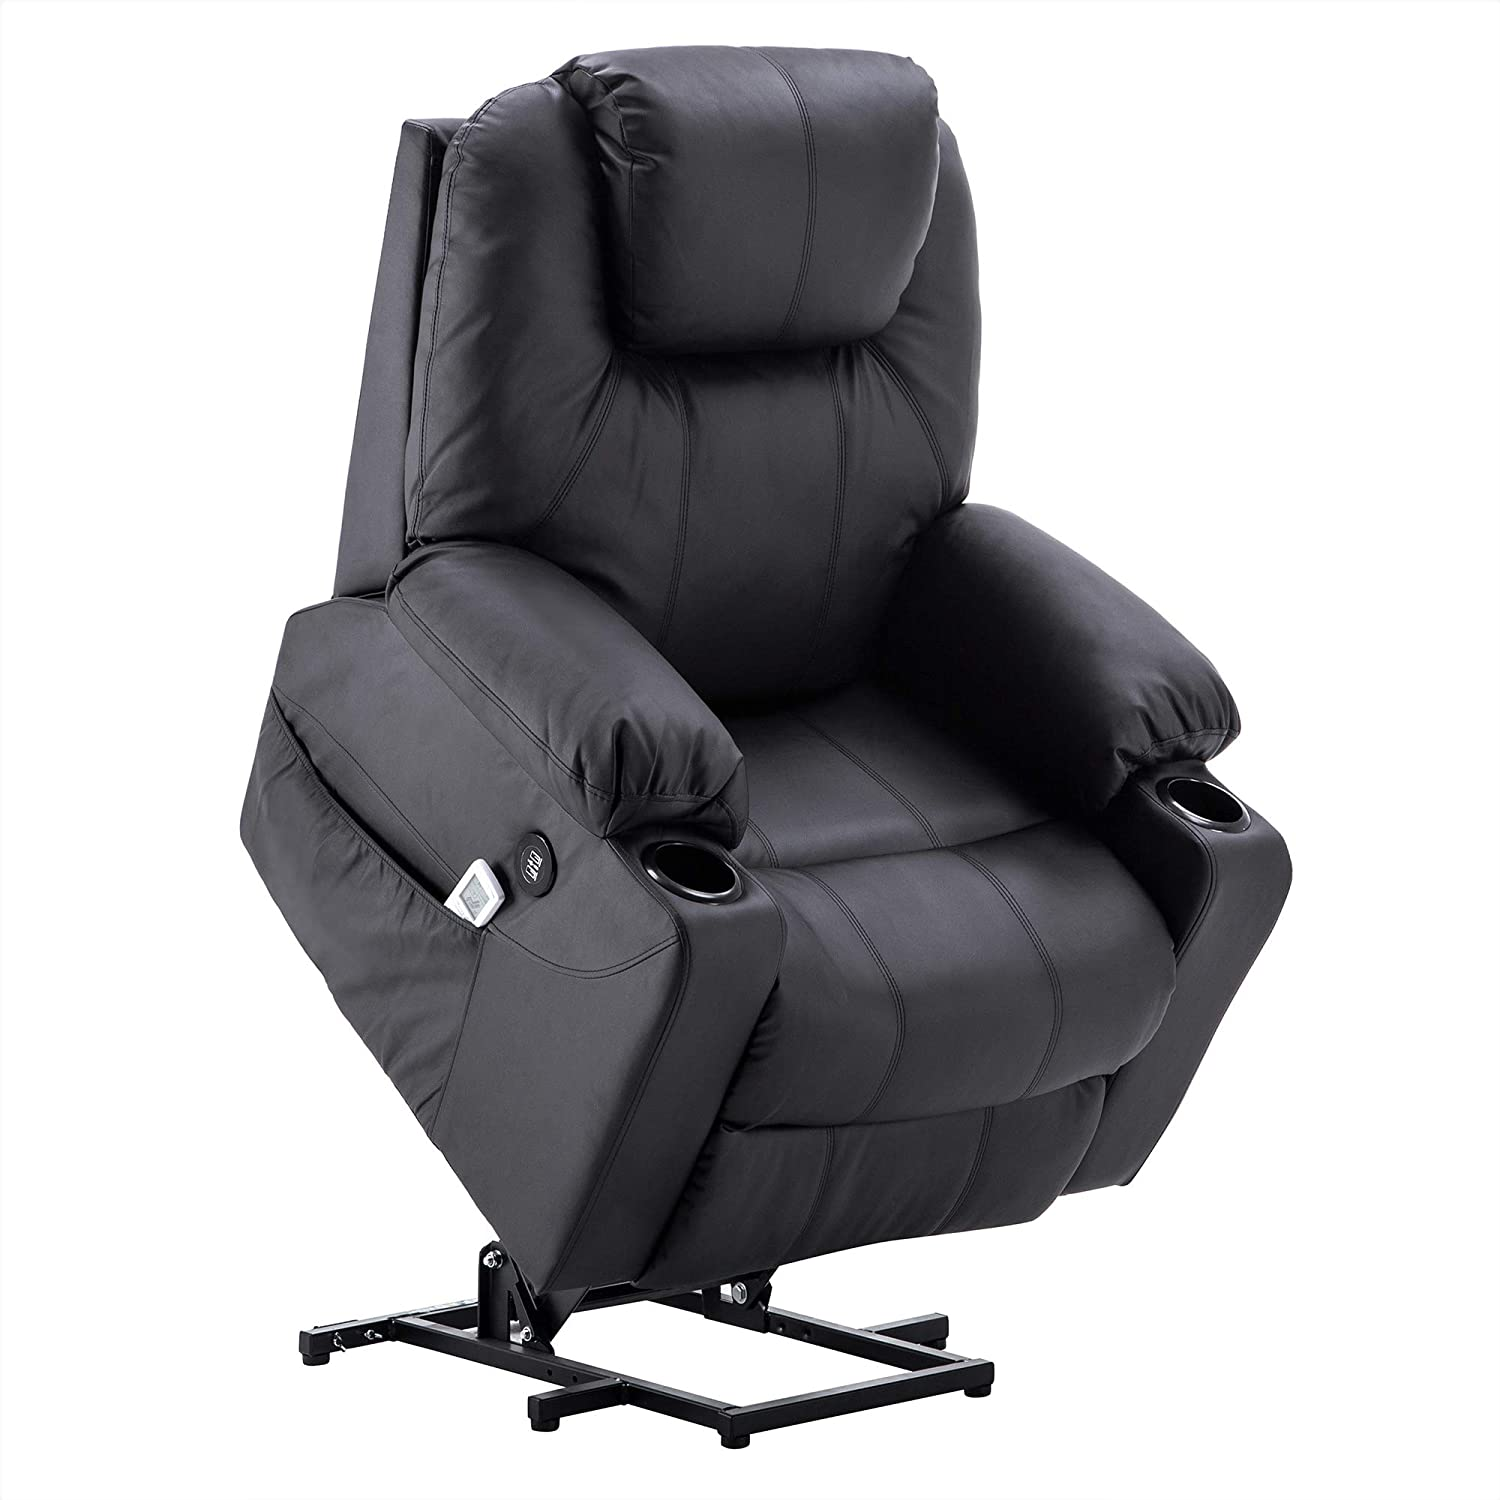 Electric Power Lift Chair Massage Sofa Recliner Heated Chair Lounge w/Remote Control Dual USB Charging Ports 7045 (Black) Mcombo